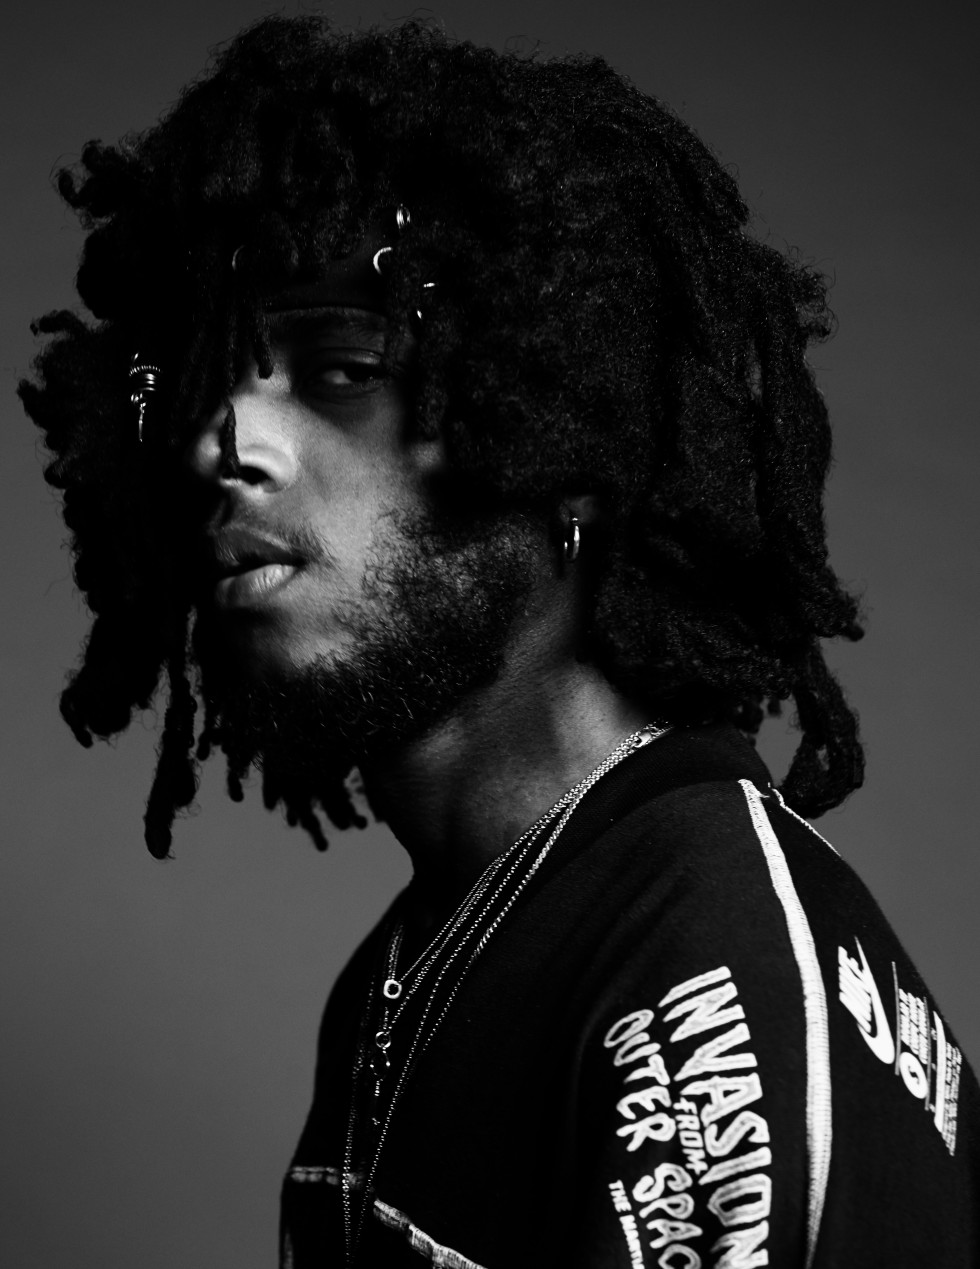 6LACK_HUNGER_TV_BY_DERRICK_KAKEMBO_005-980x1269.jpg